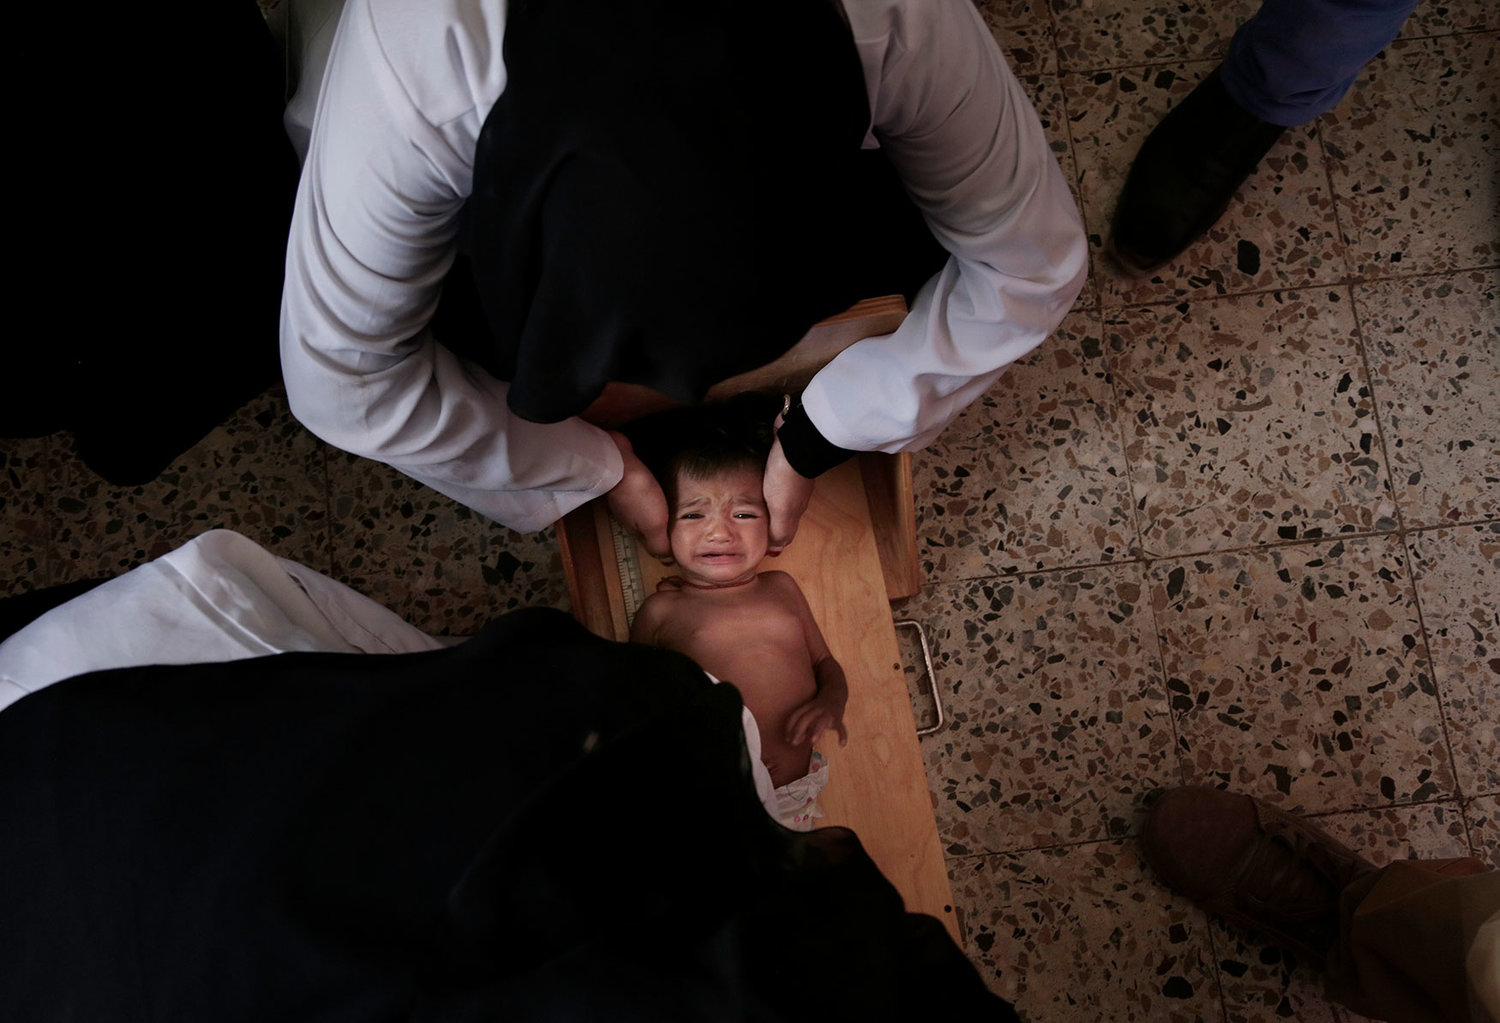 Hospital in al-Khoukha, Yemen. (AP Photos/Nariman El-Mofty)